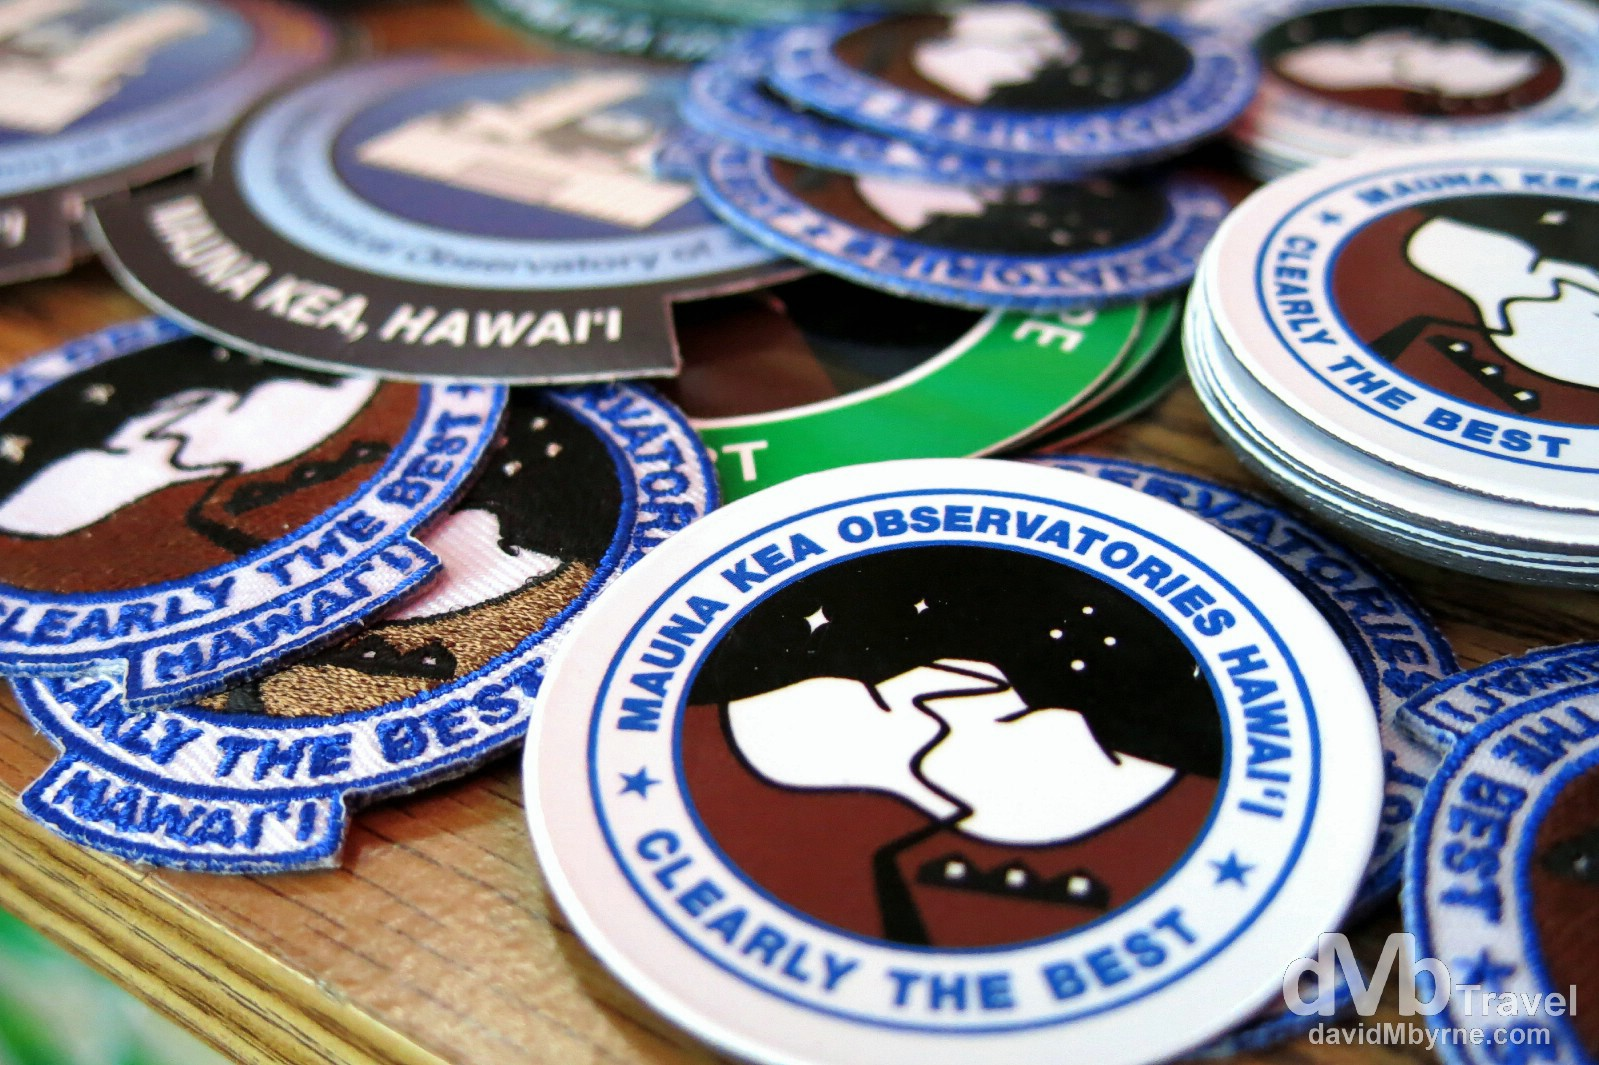 Badges for sale in the Mauna Kea Observatories Visitors Centre, the Big Island of Hawaii, USA. March 3rd 2013.